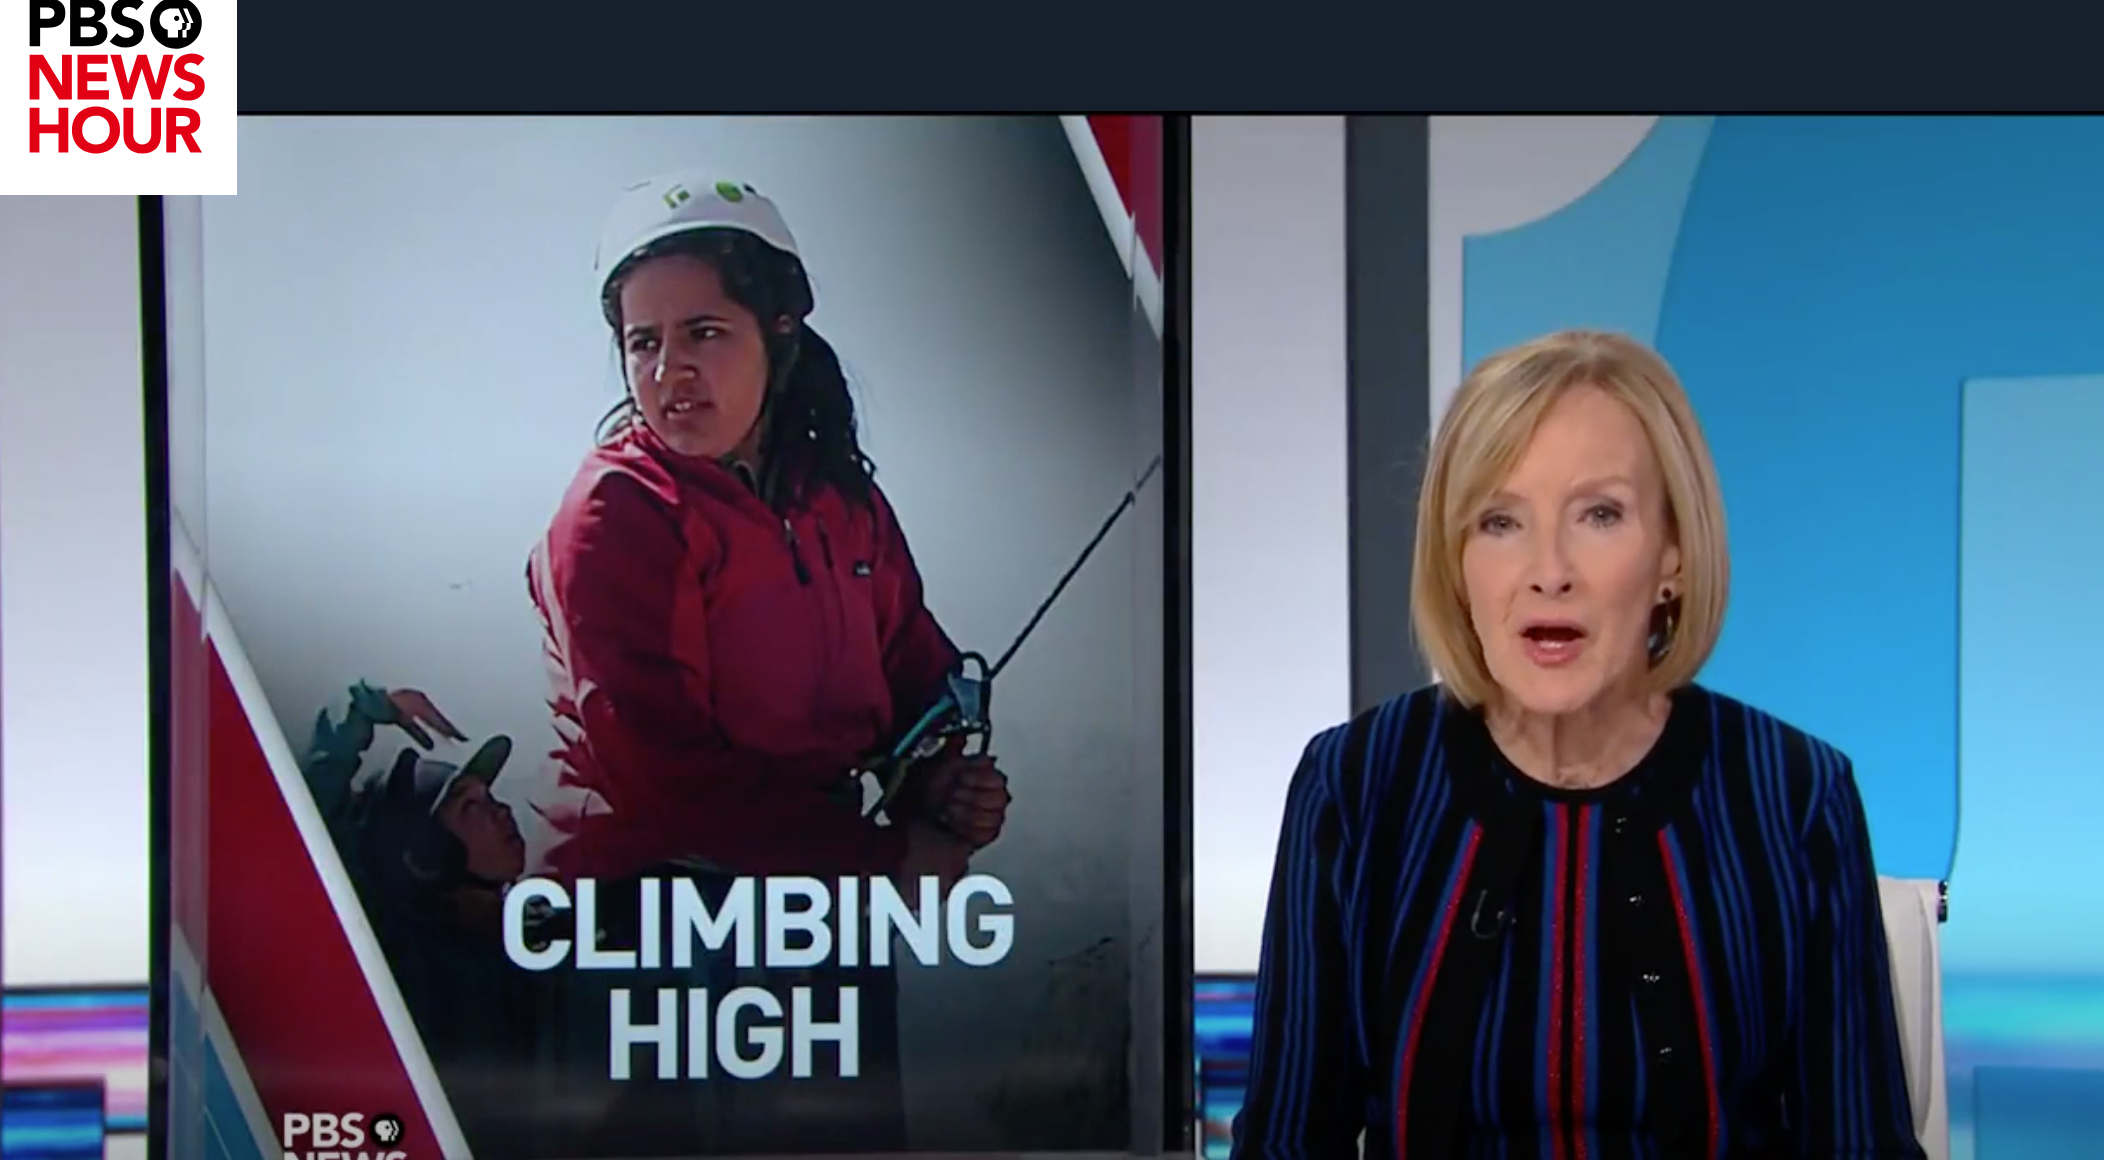 PBS News Hour: Mountain Climbing Afghan Girls Breathe Free